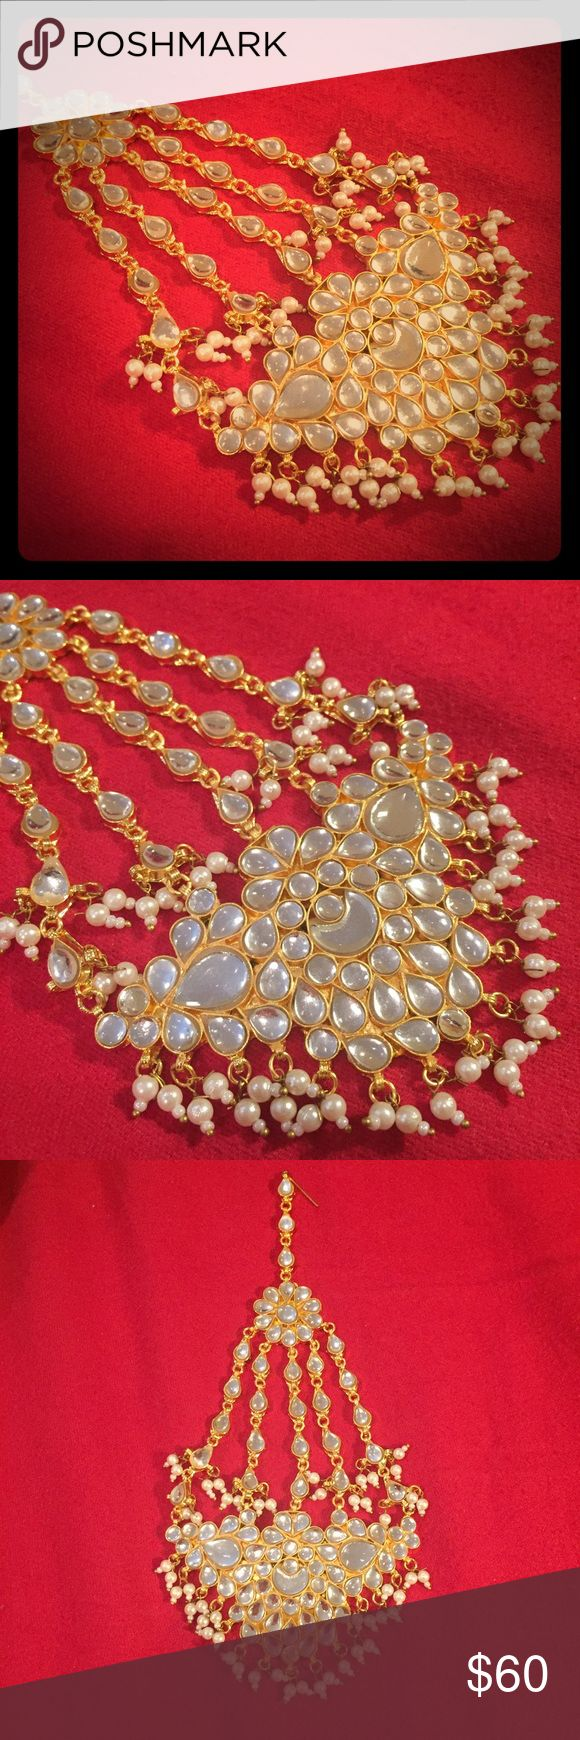 Paasa jhumar head gear Beautiful gold finish paasa head jewellery ( jhumar) for the complete ethnic Bollywood look. Made of metal alloy. Intricate design with white drops. First and last pictures for reference 😍 Jewelry